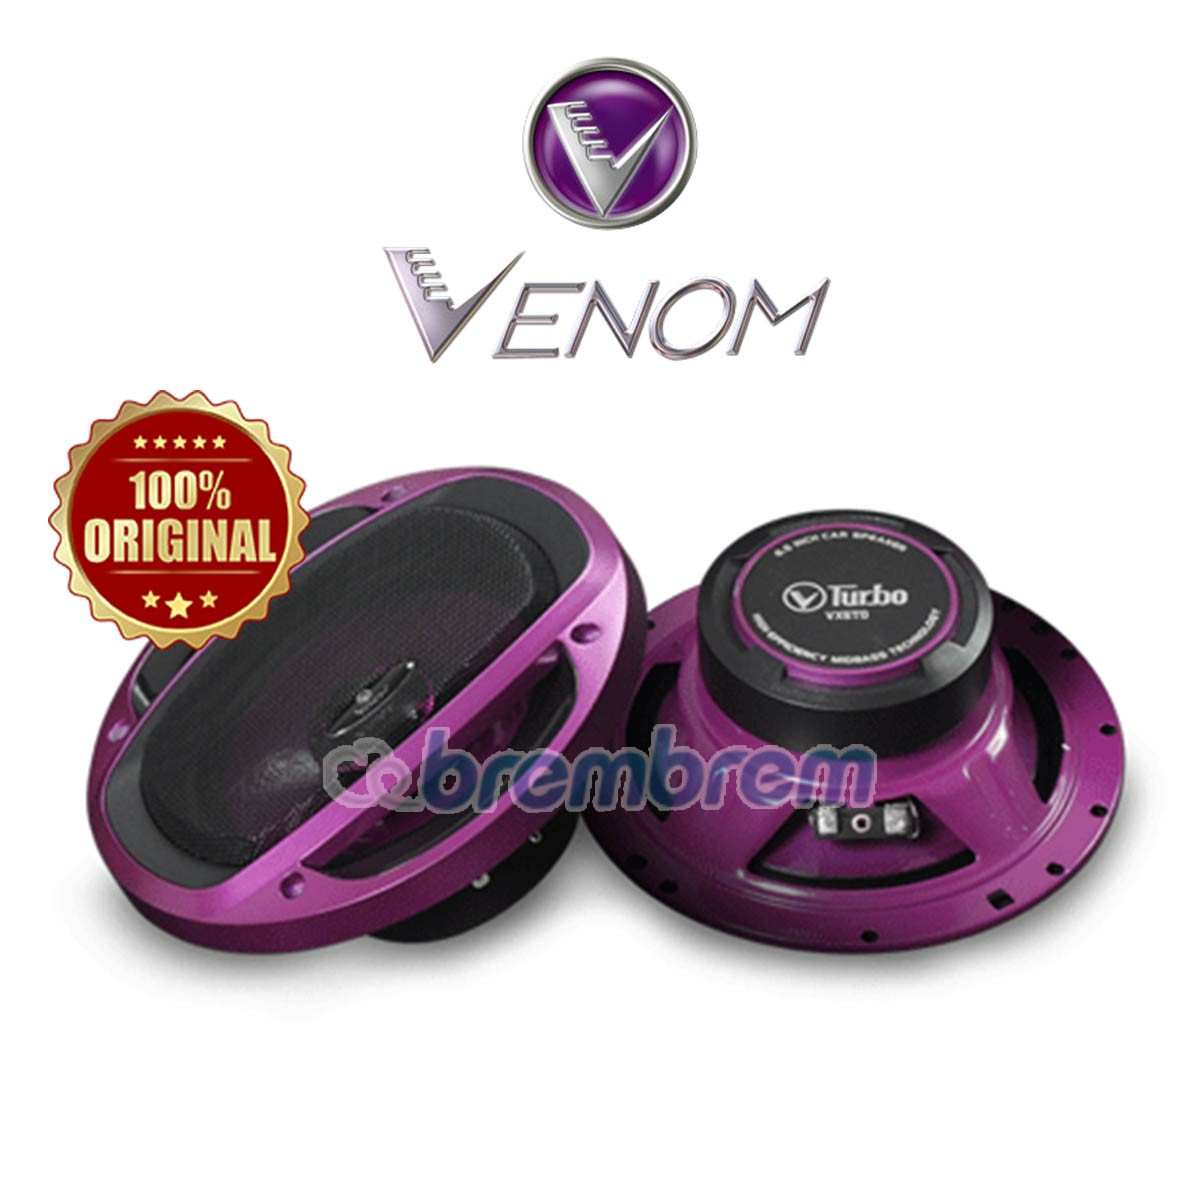 VENOM TURBO SERIES VX603TO - SPEAKER COAXIAL